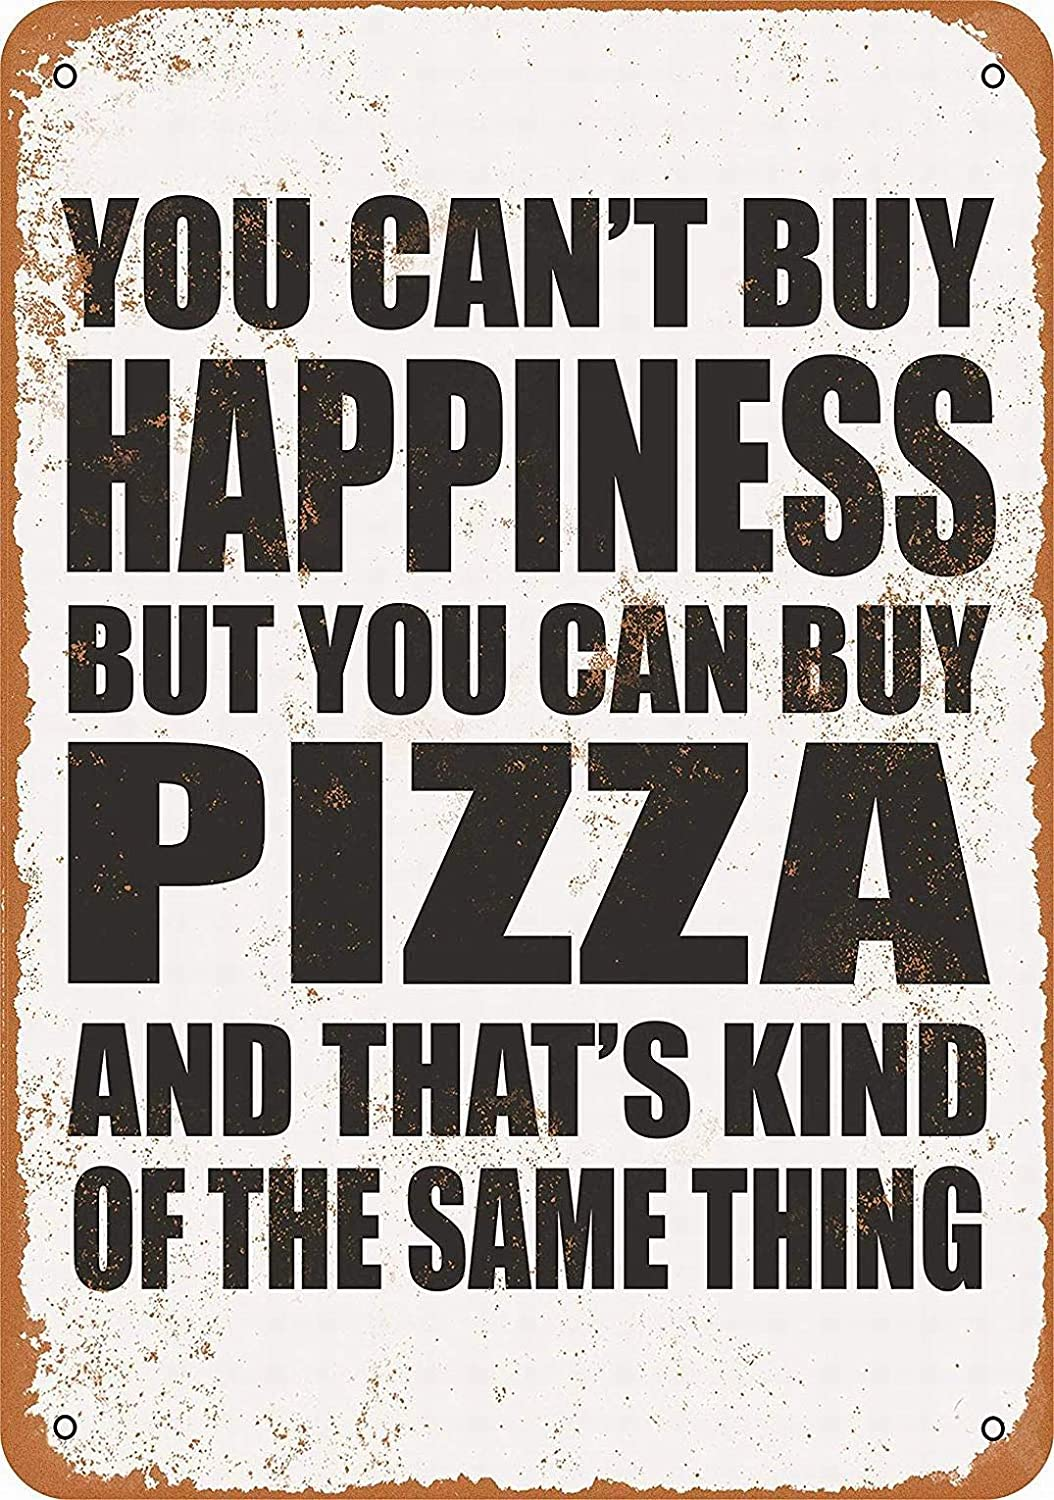 LoMall 12 x 16 Metal Sign - You Can't Buy Happiness But You Can Buy Pizza - Vintage Wall Decor Art